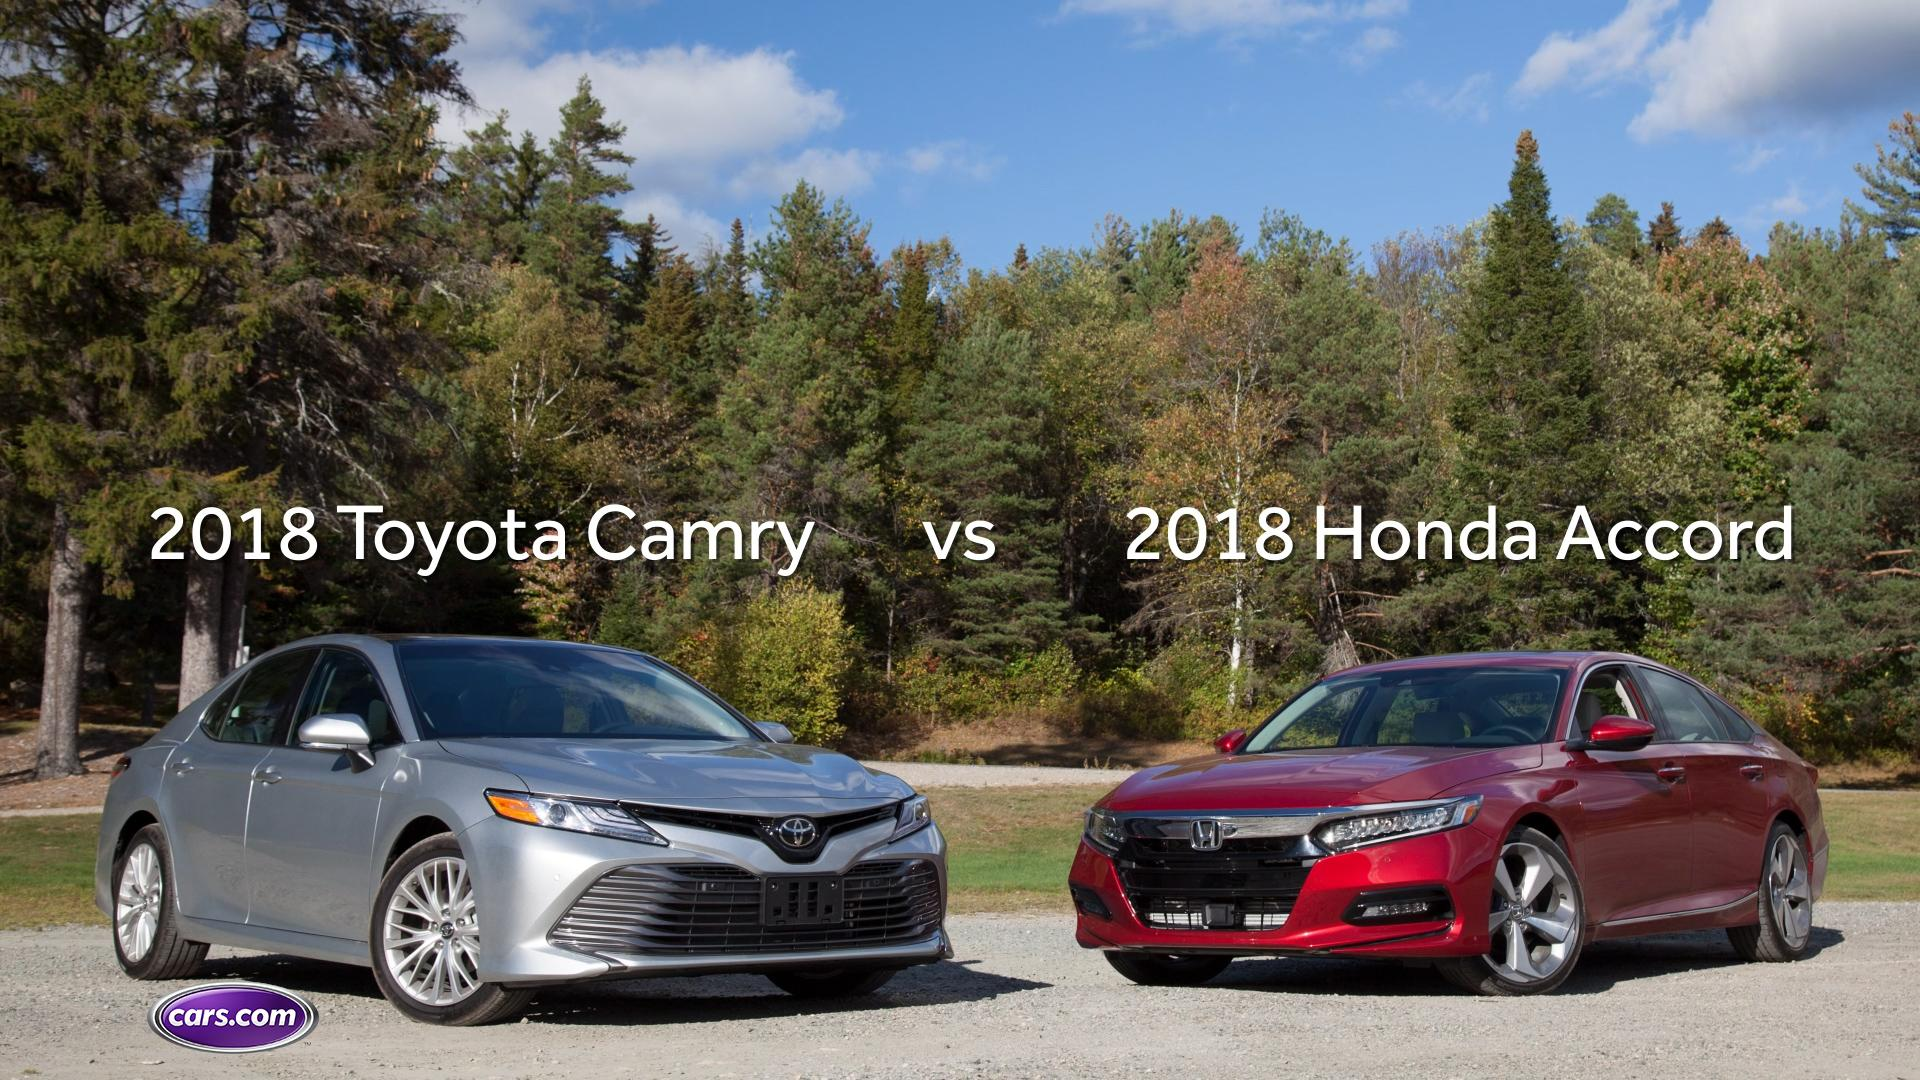 2018 Honda Accord Vs 2018 Toyota Camry: Cars.com Video Comparison